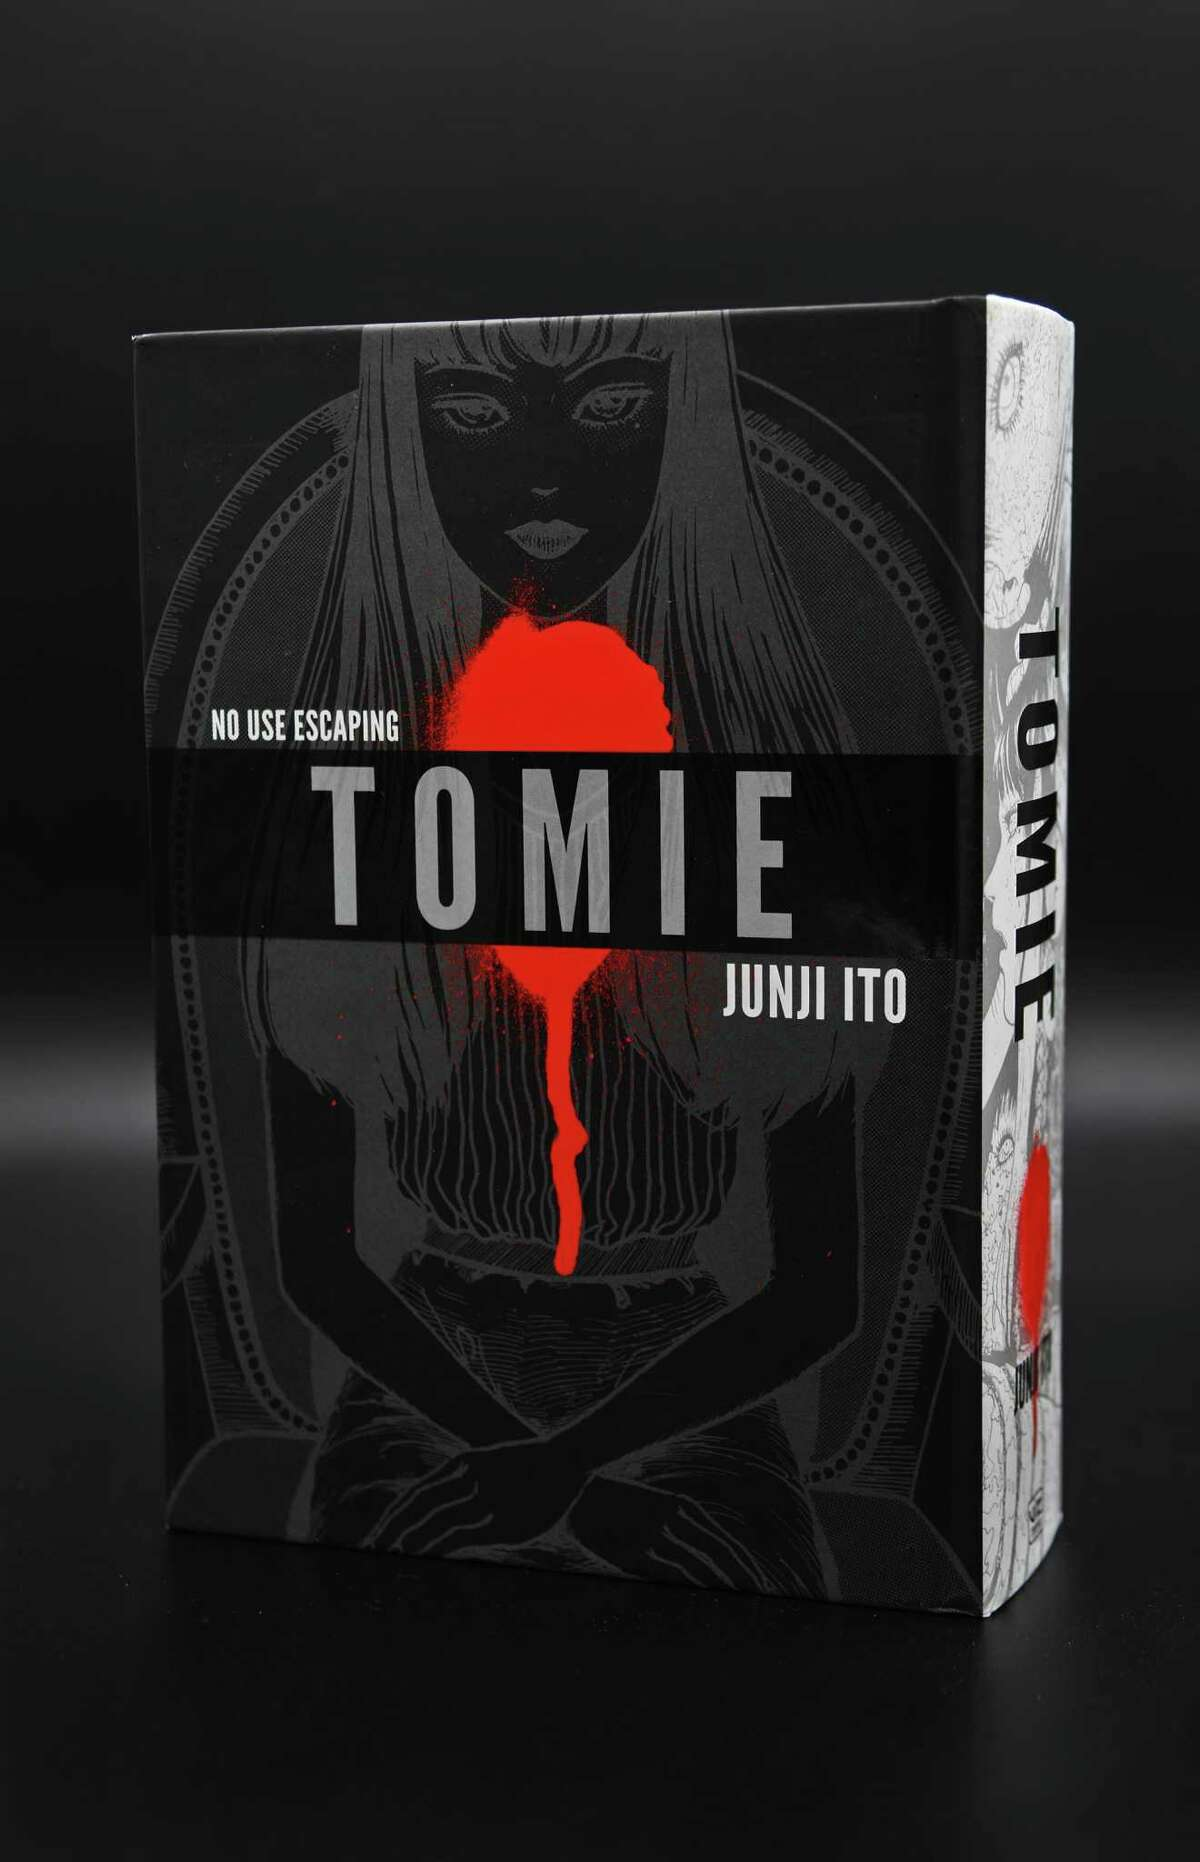 Mangaka Junji Ito's Tomie was published in 2016. The Laredo Public Library manga club will be reading multiple books by Ito over the span of four months.